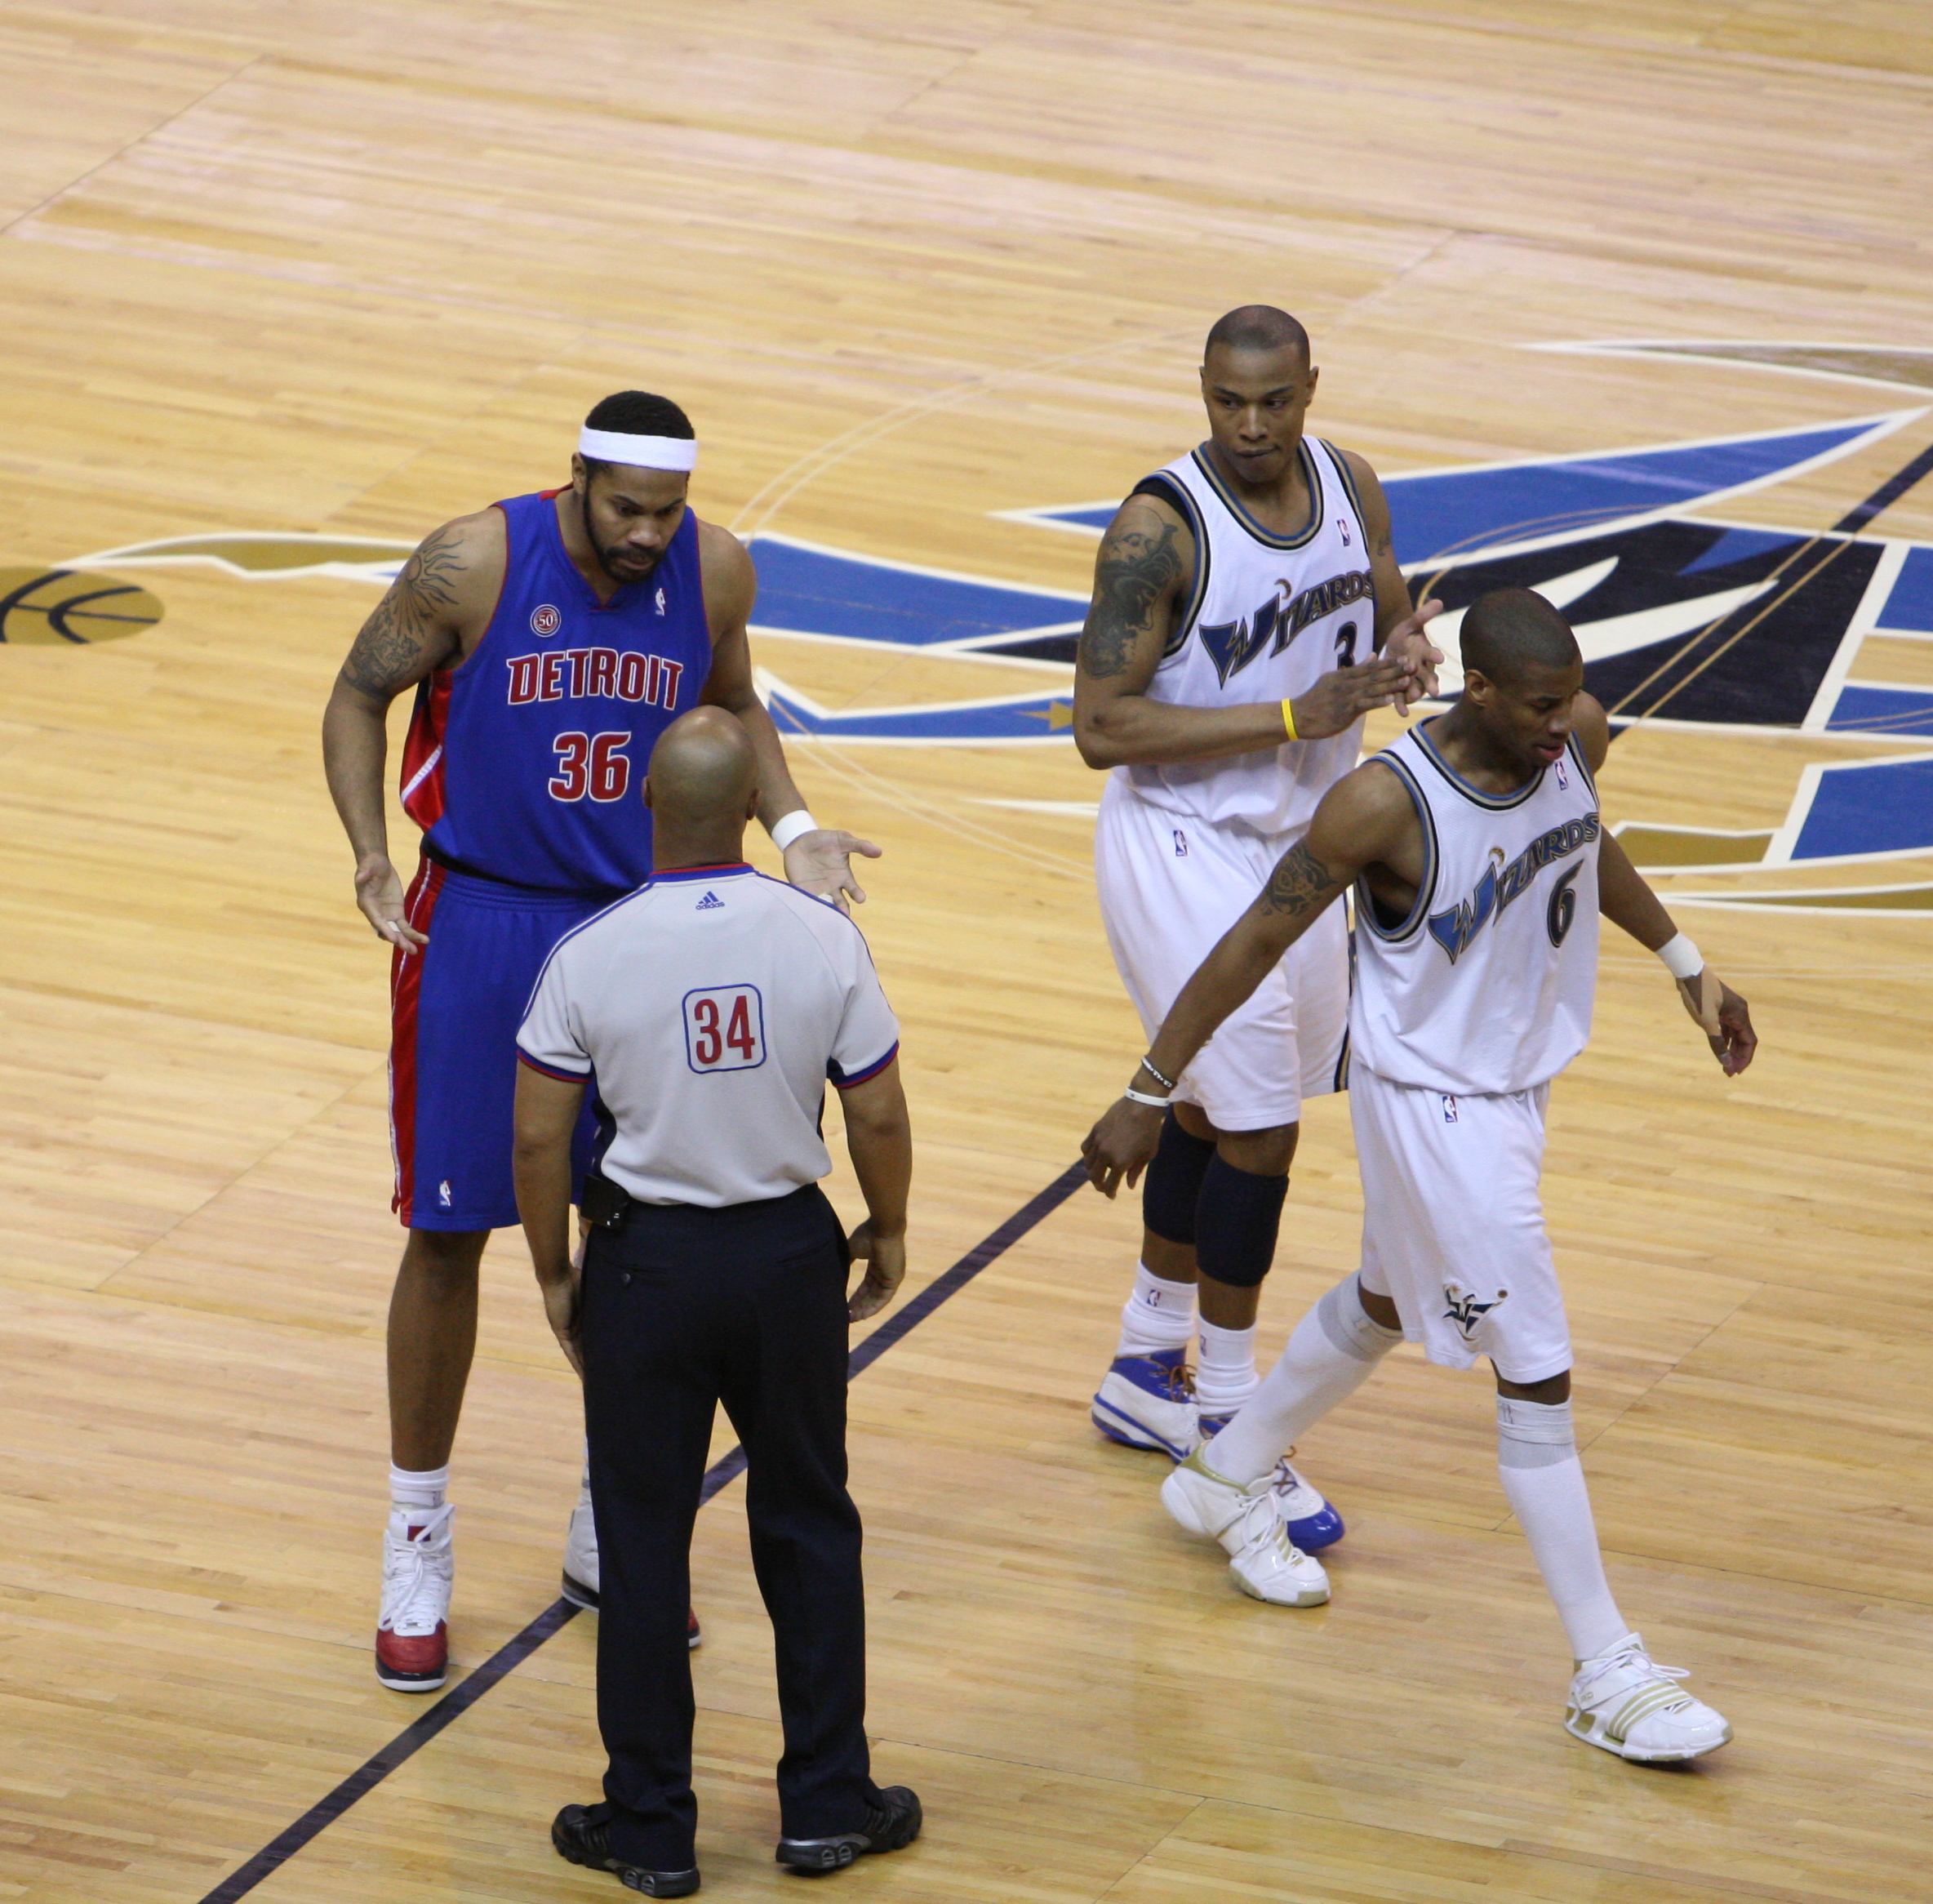 File Rasheed Wallace argues with ref Wikimedia mons